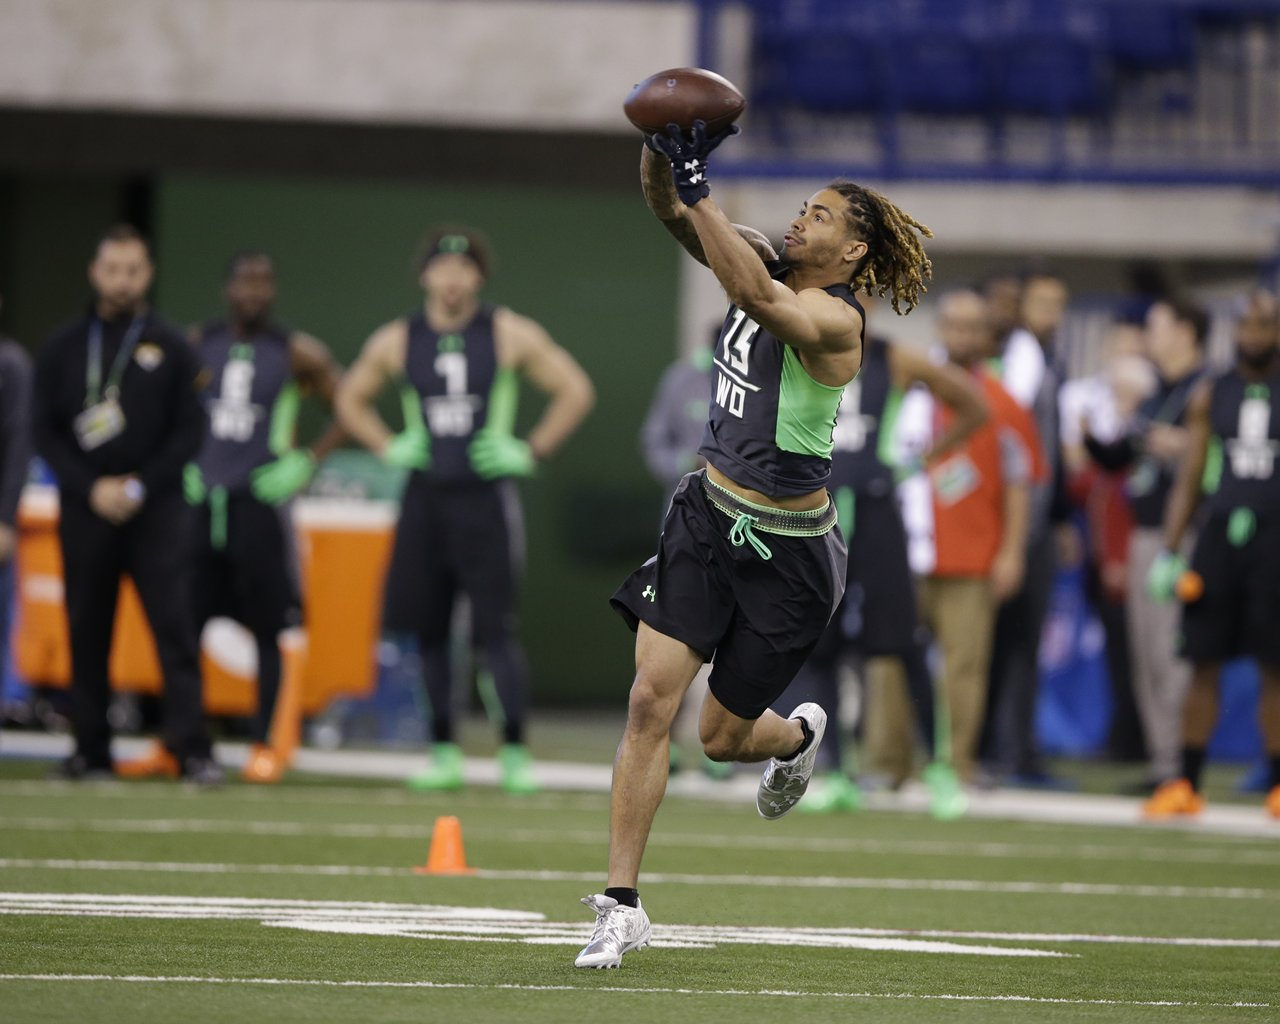 Notre Dame receiver Will Fuller runs a drill at the NFL football scouting combine on Saturday, Feb. 27, 2016, in Indianapolis. (AP Photo/Darron Cummings)